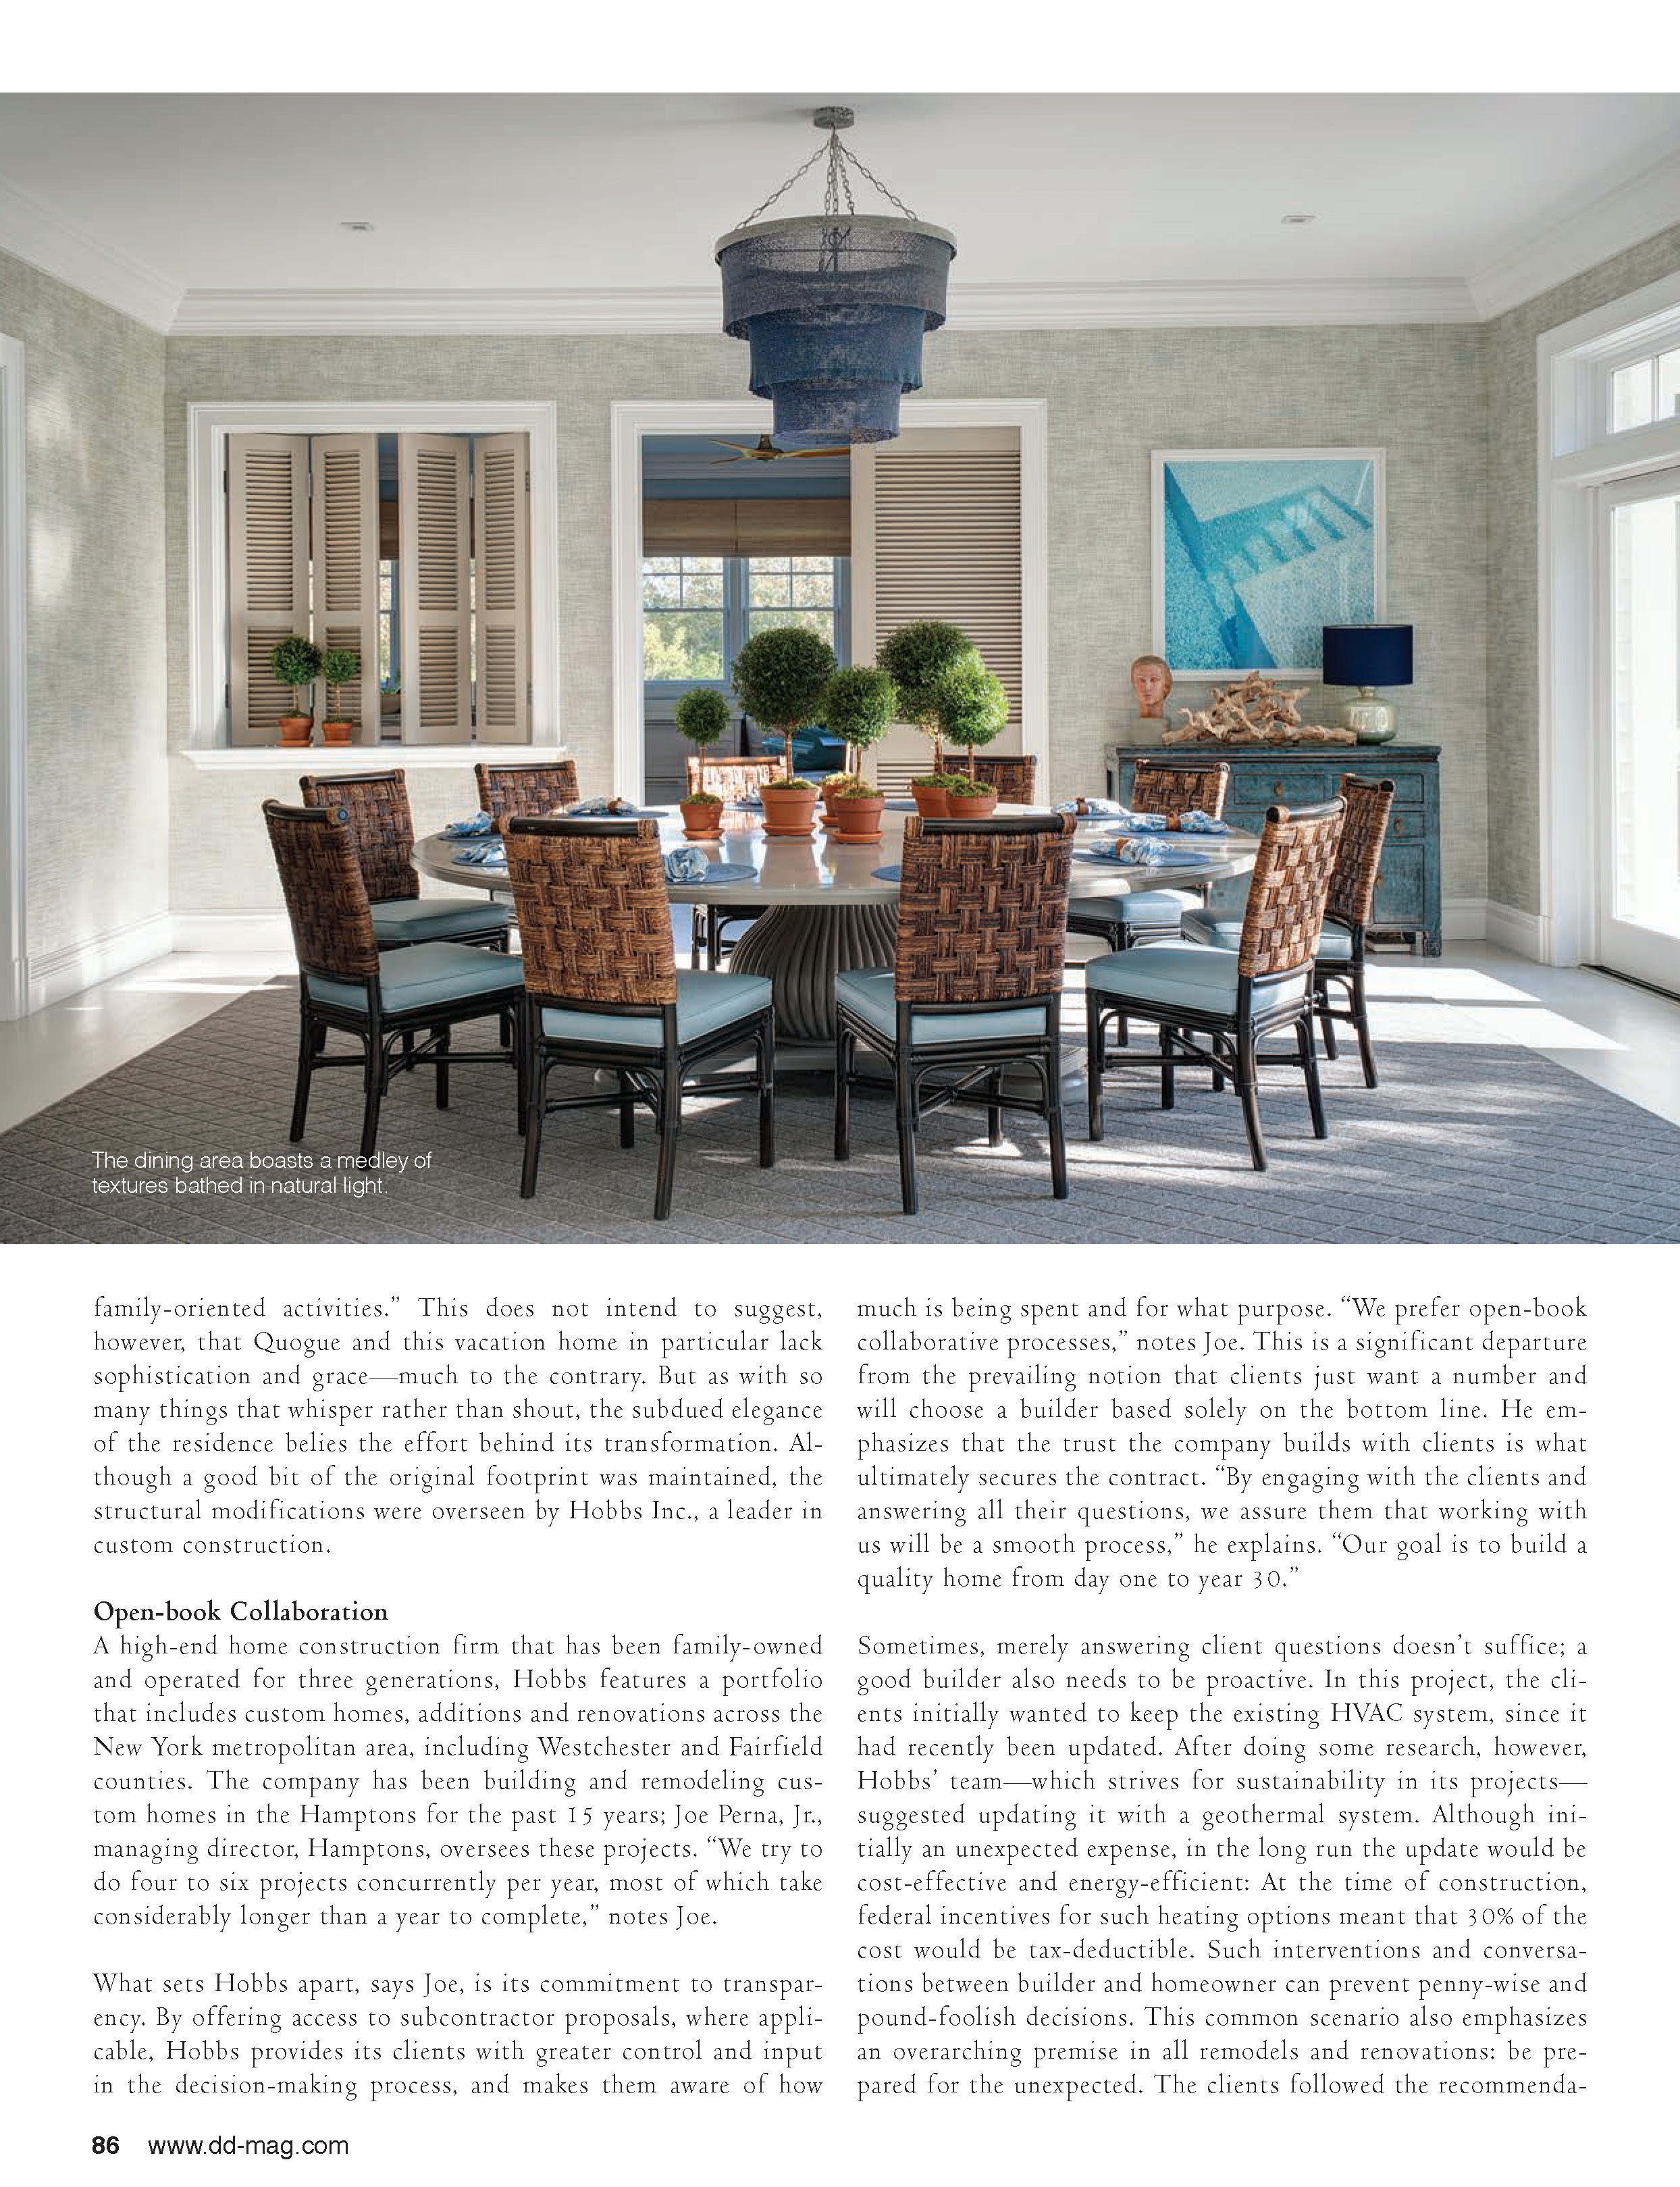 Design + Decor Spring 2019 - Cover & Article_Page_06.jpg